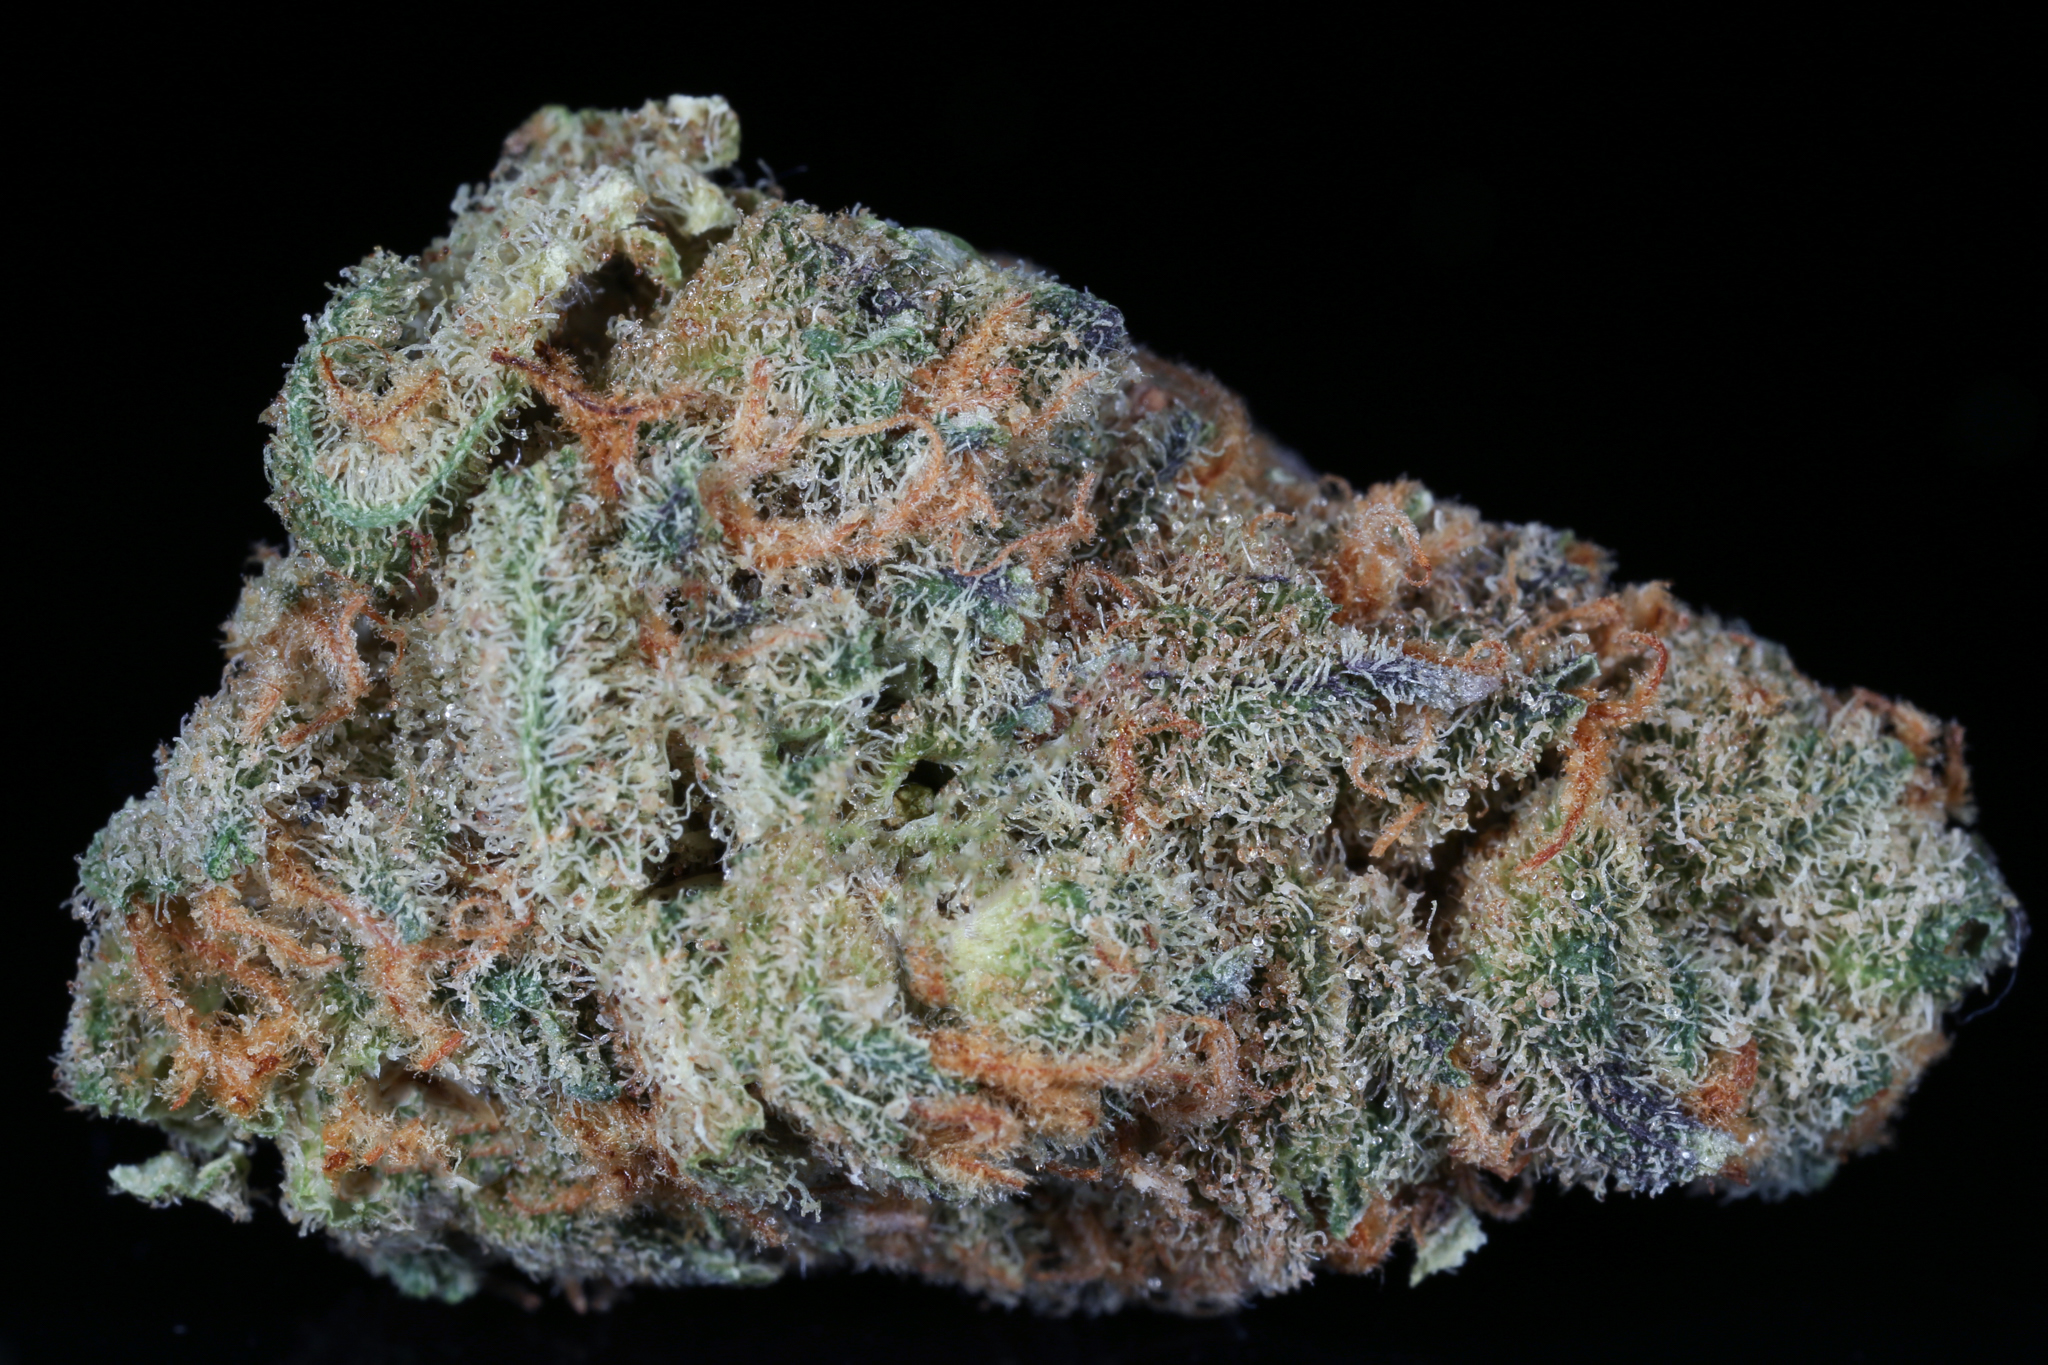 Slymer-weed-strain-matrix-tga-genetics-chernobyl-nevada-matrix-best-weed-ever-Dried-4720